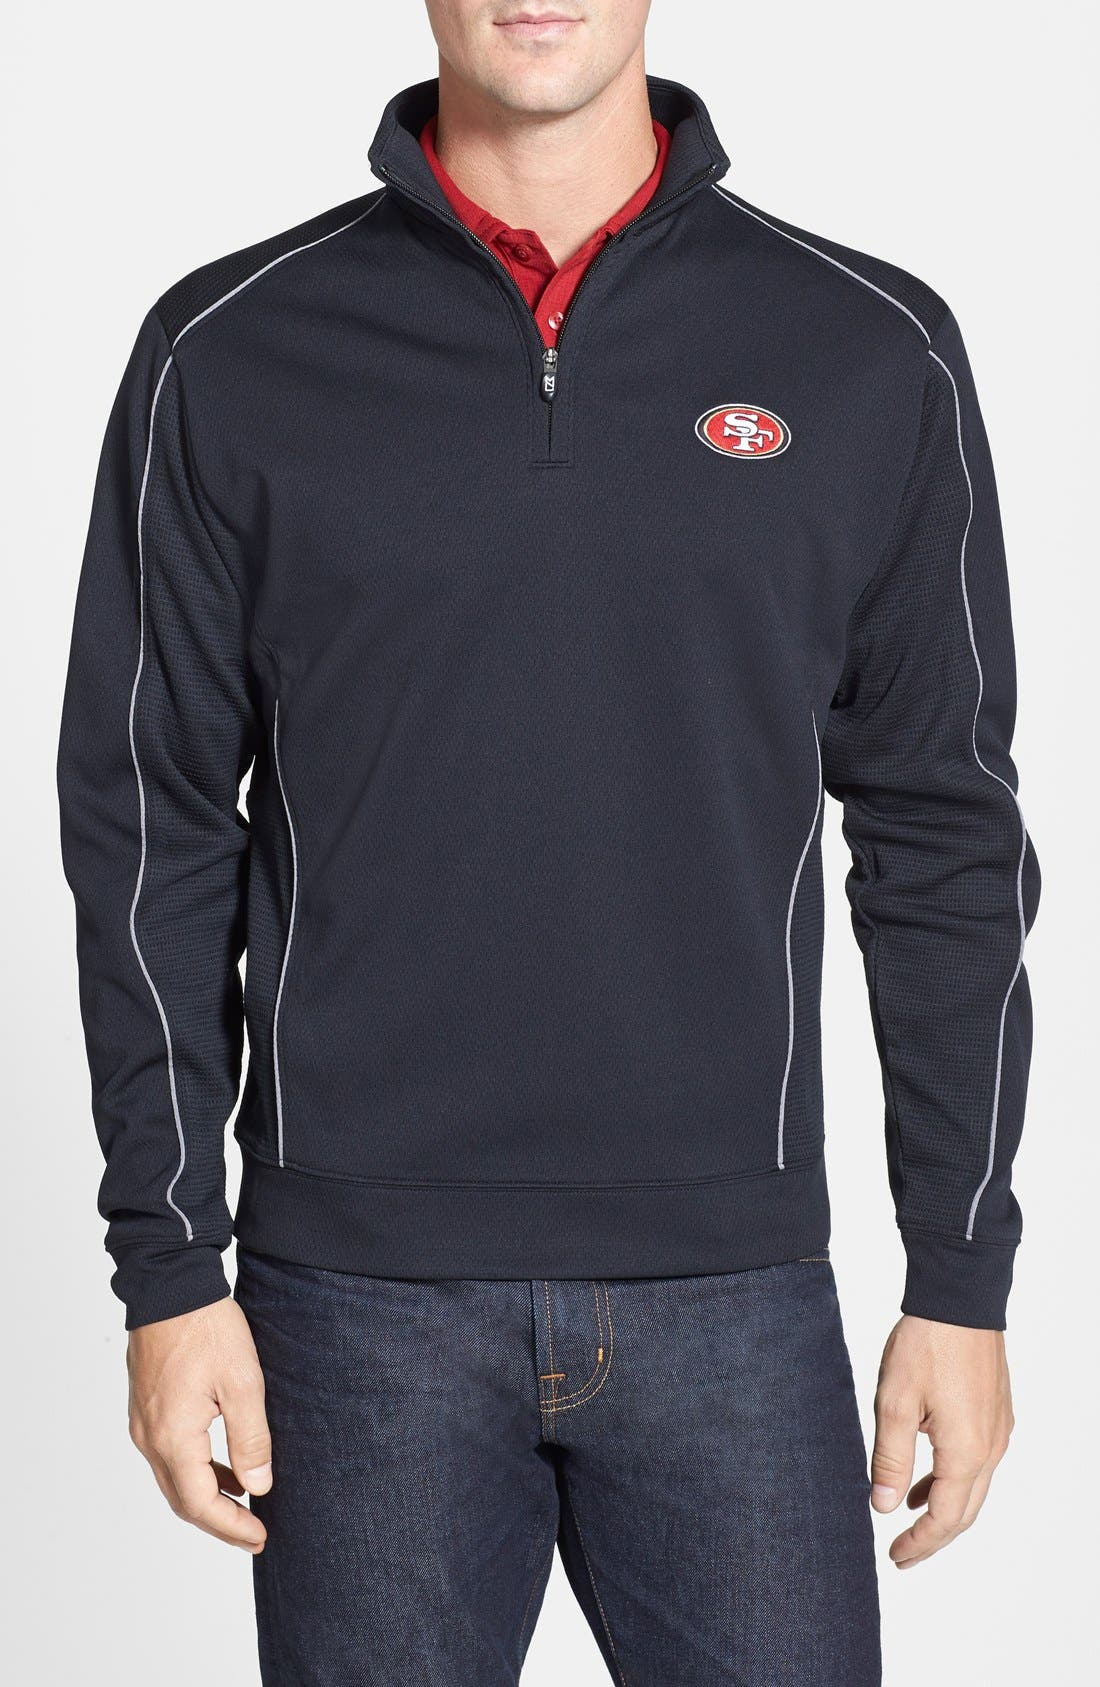 Cutter & Buck 'San Francisco 49ers - Edge' DryTec Moisture Wicking Half Zip Pullover (Big & Tall)